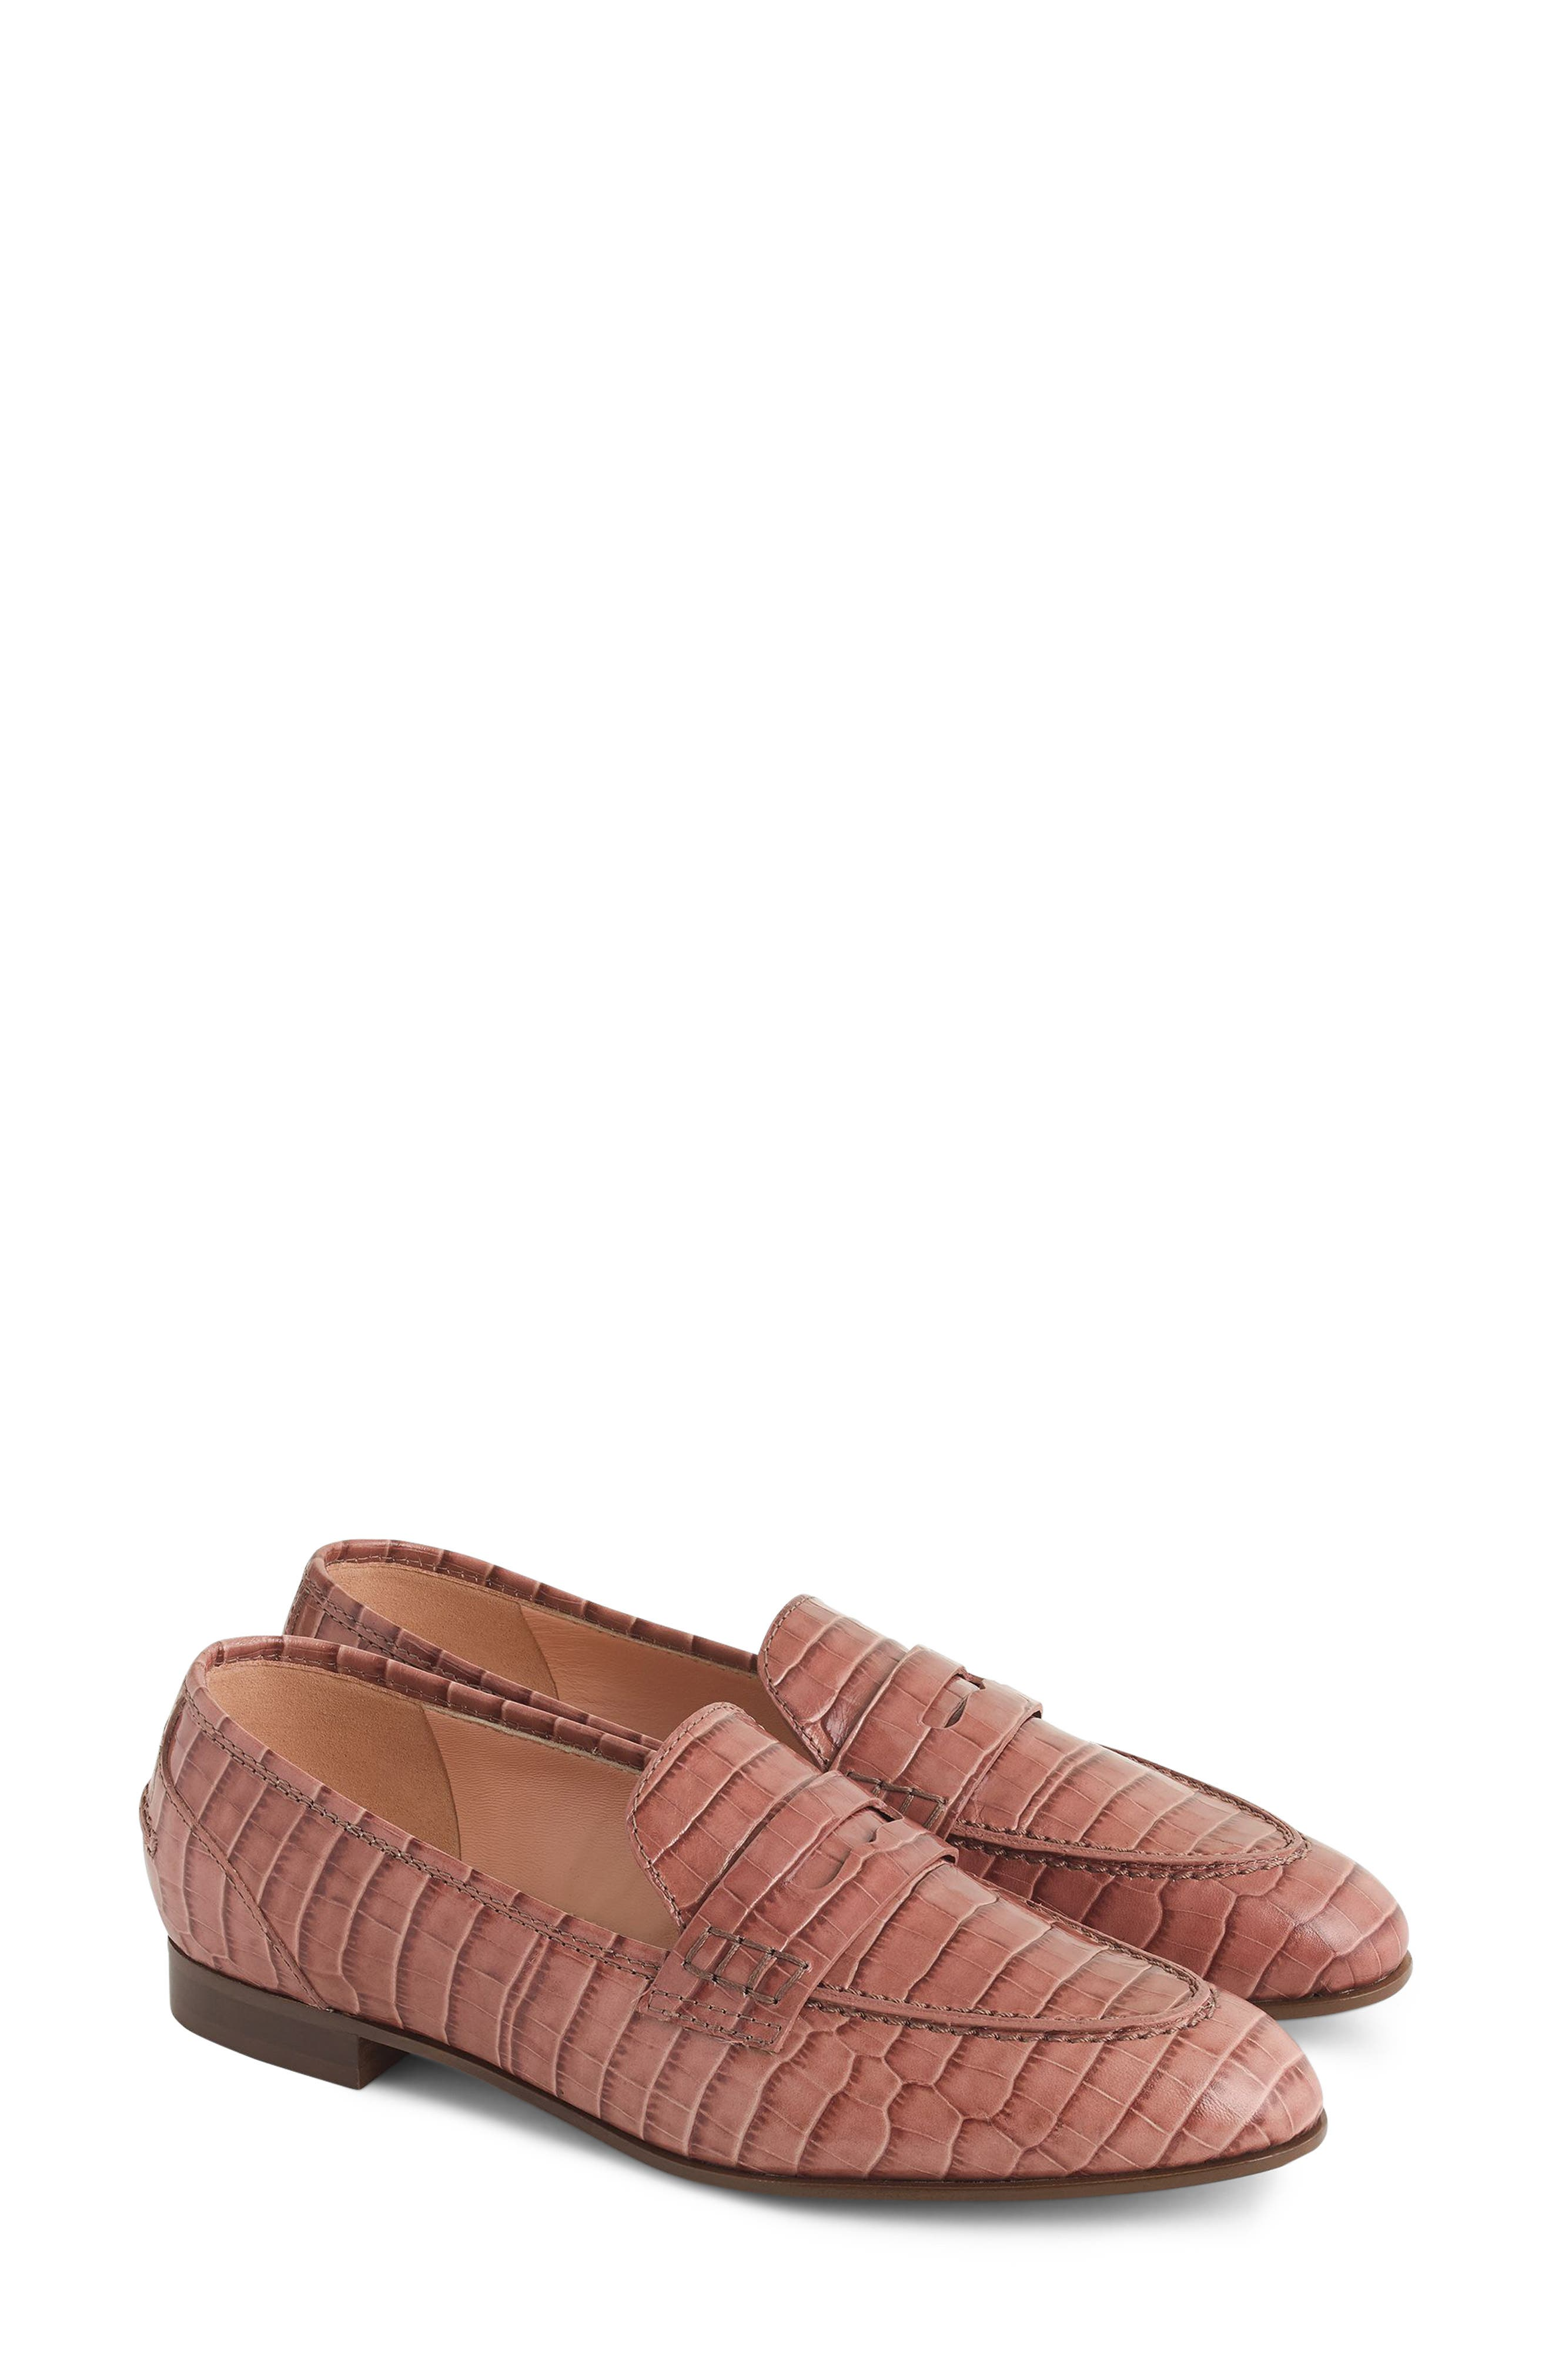 Academy Penny Loafer,                         Main,                         color, JASMINE FROST